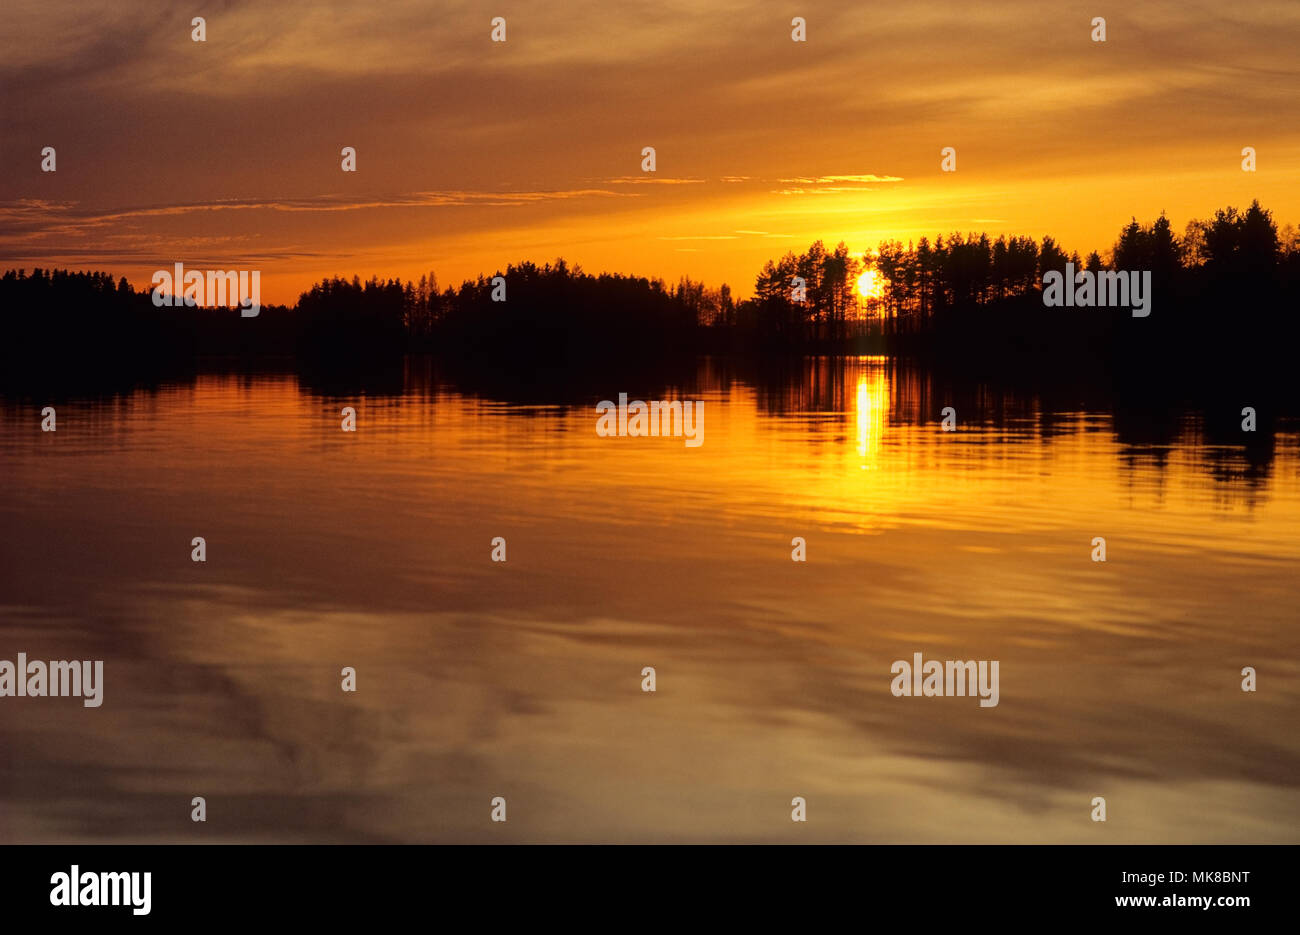 Sunset with intense colors over lake in Finland. - Stock Image